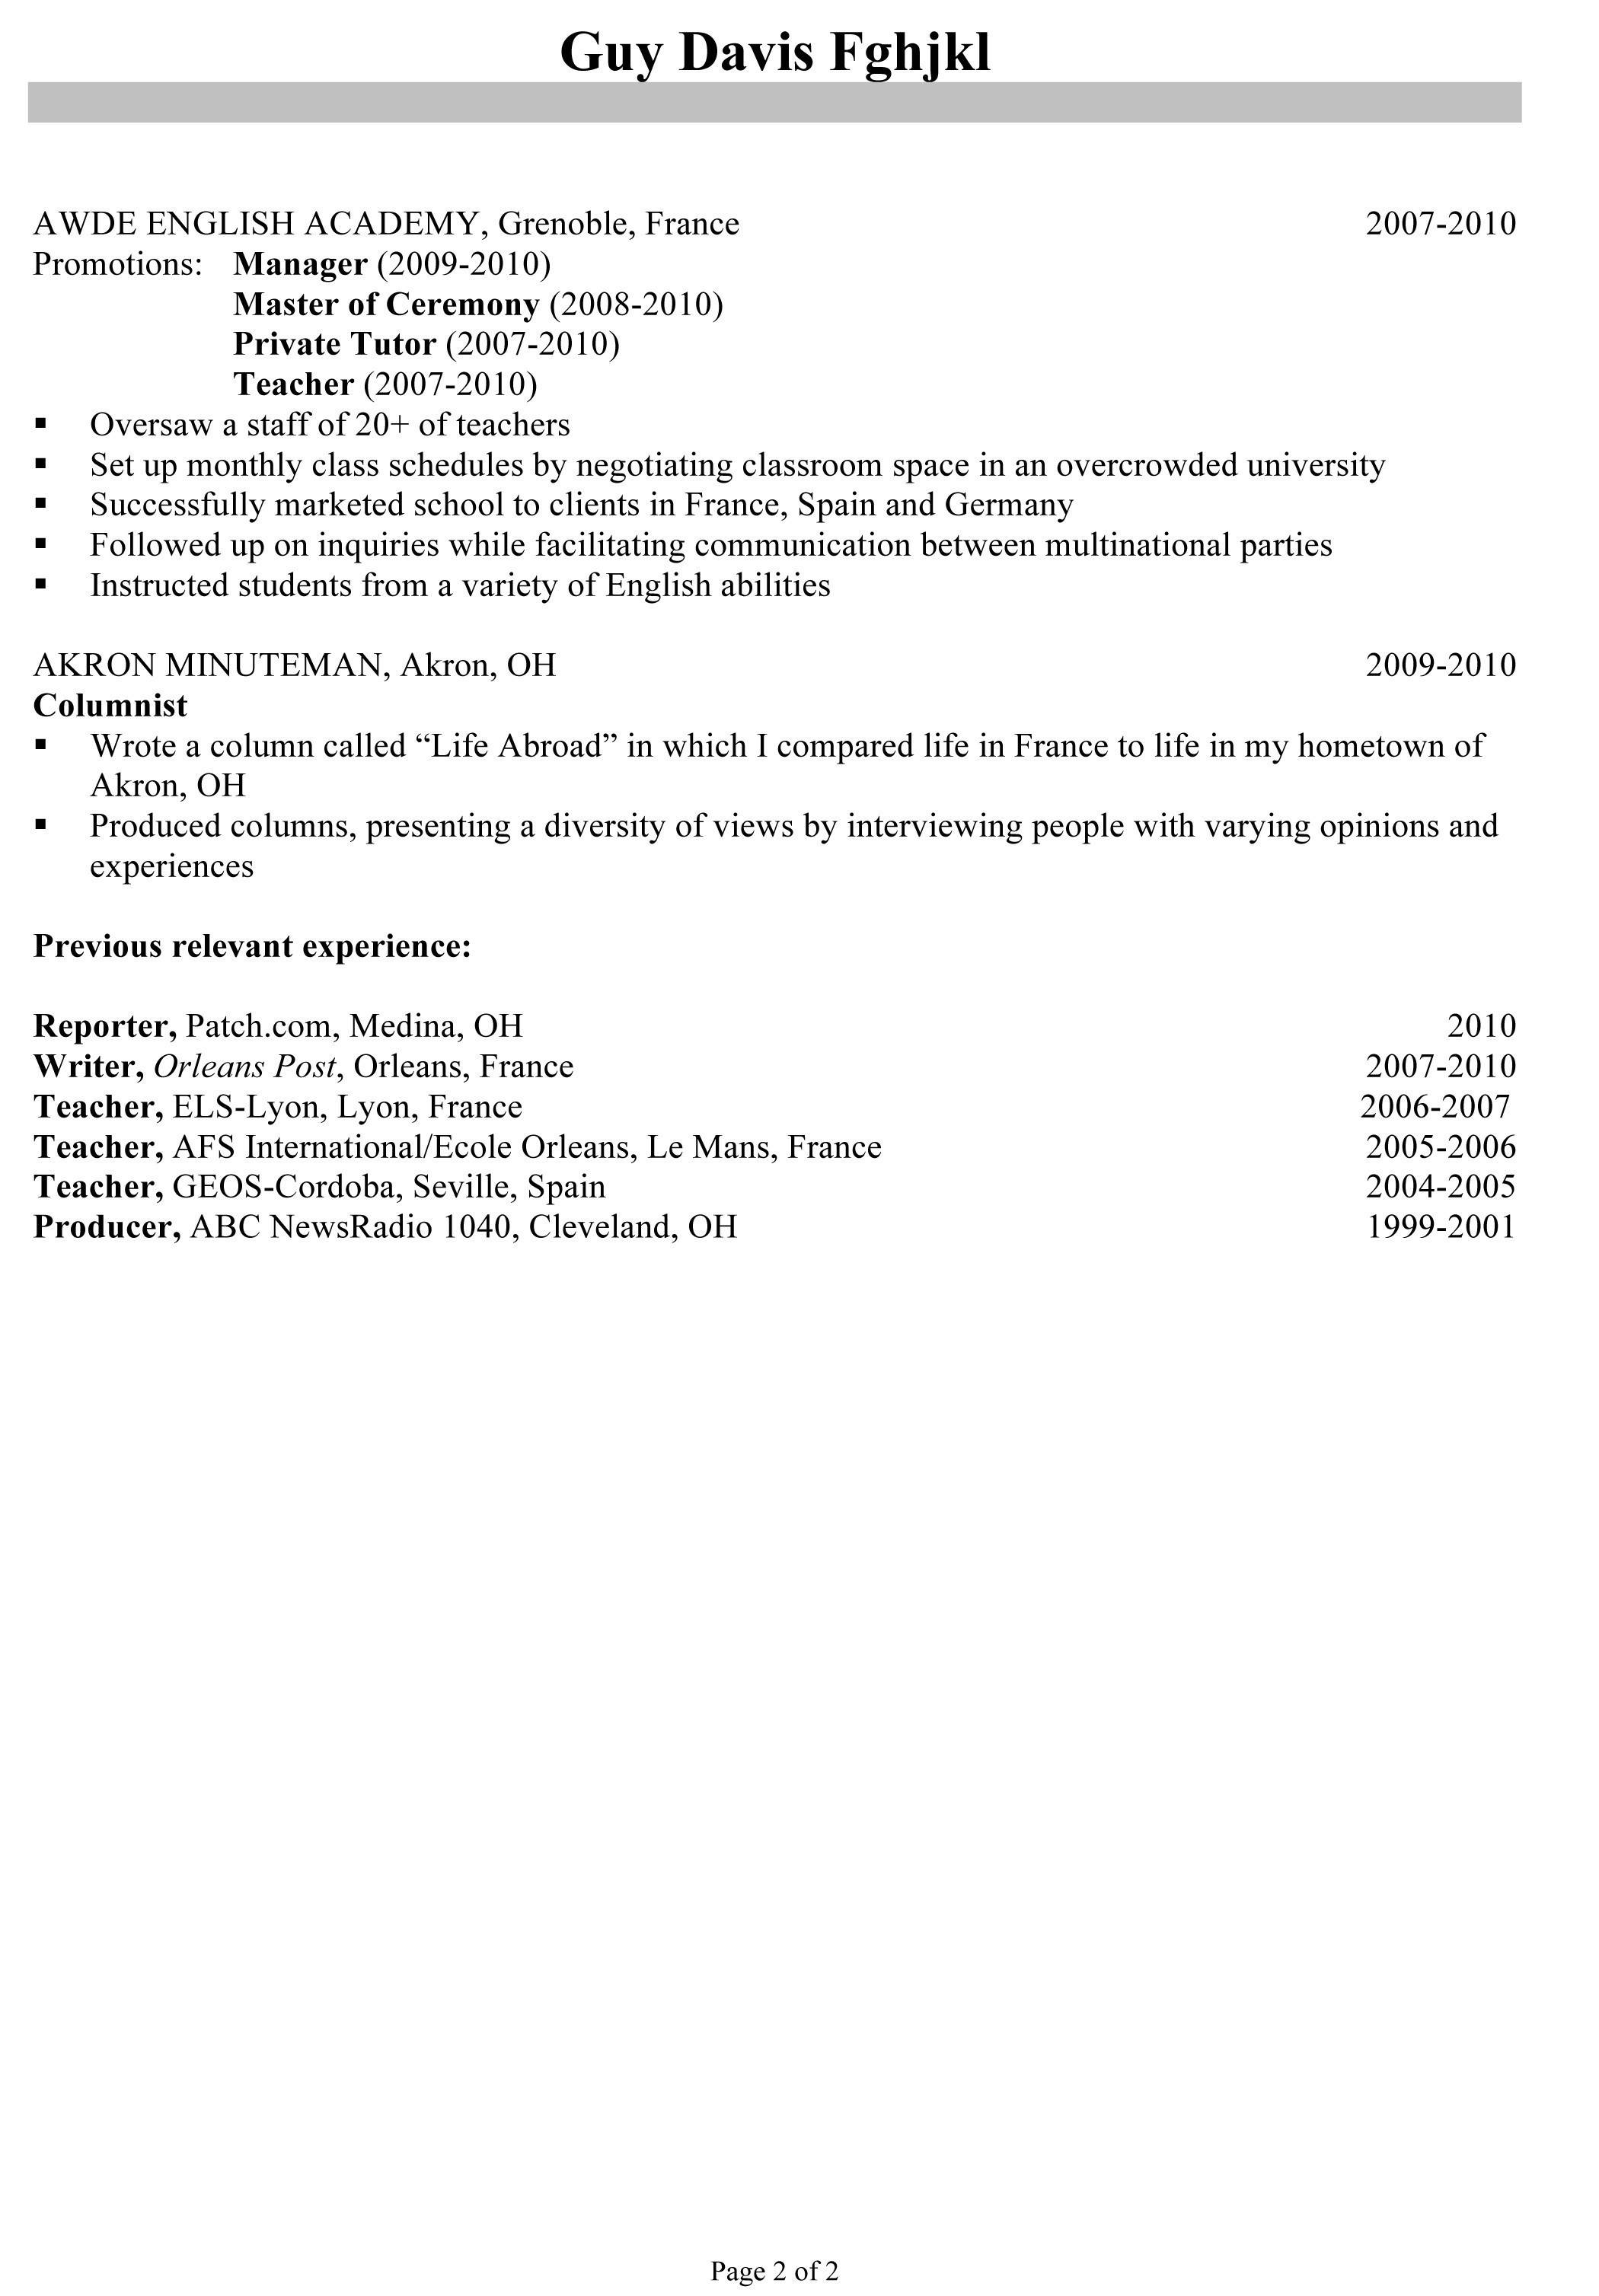 Pharmacy Manager Resume Template